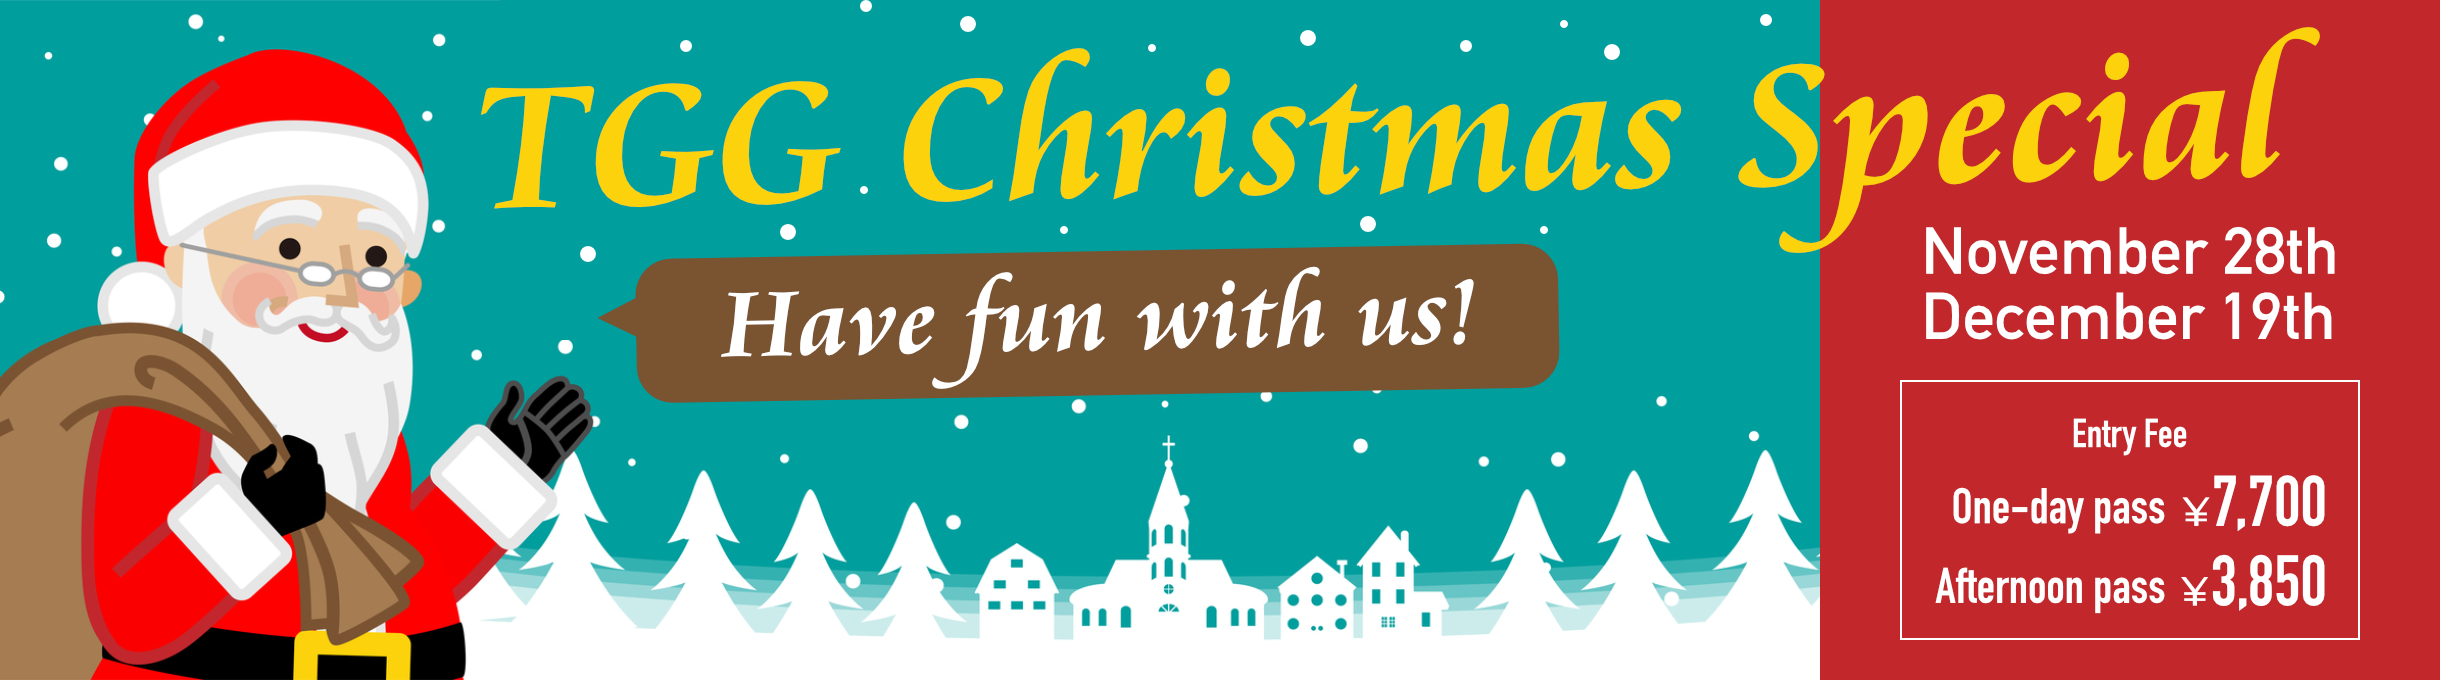 Have fun with us! TGG Christmas Special / 28th November, 19th December / Entry Fee: One-day pass 7,700 yen, Afternoon pass 3850 yen